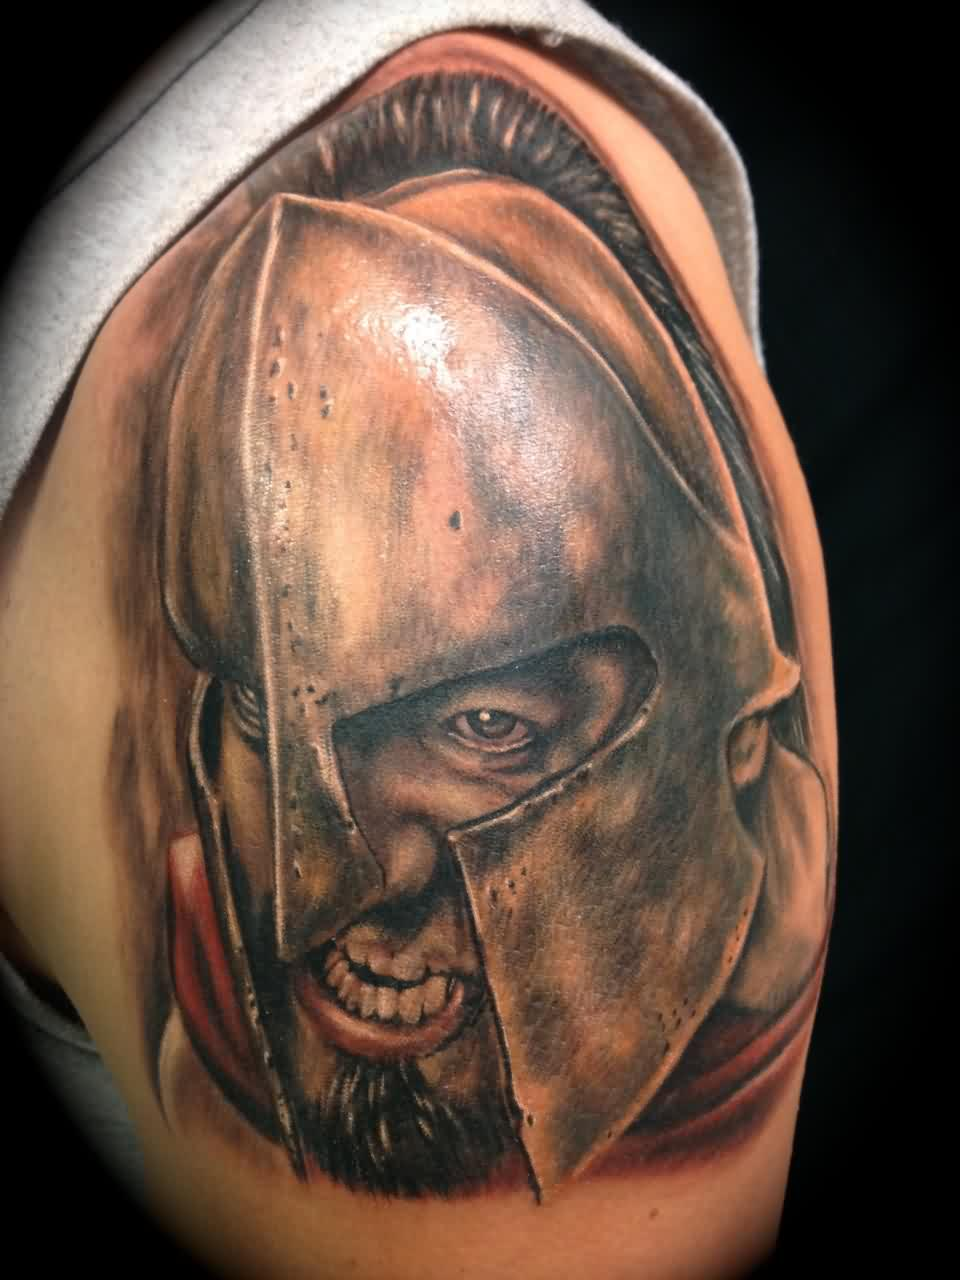 Angry Spartan Warrior Portrait Tattoo On Shoulder